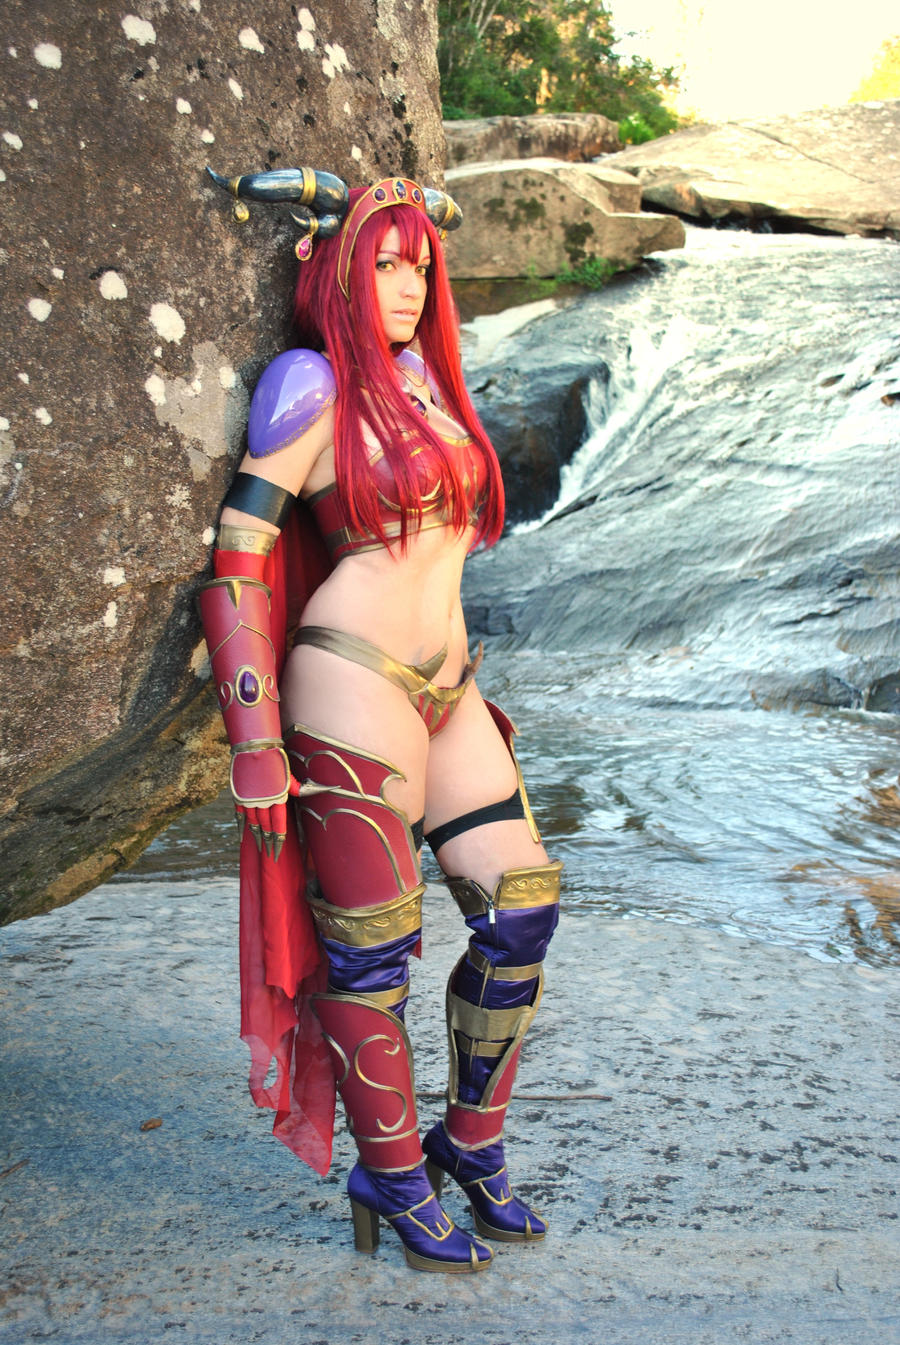 Alexstrasza girl sexy galleries